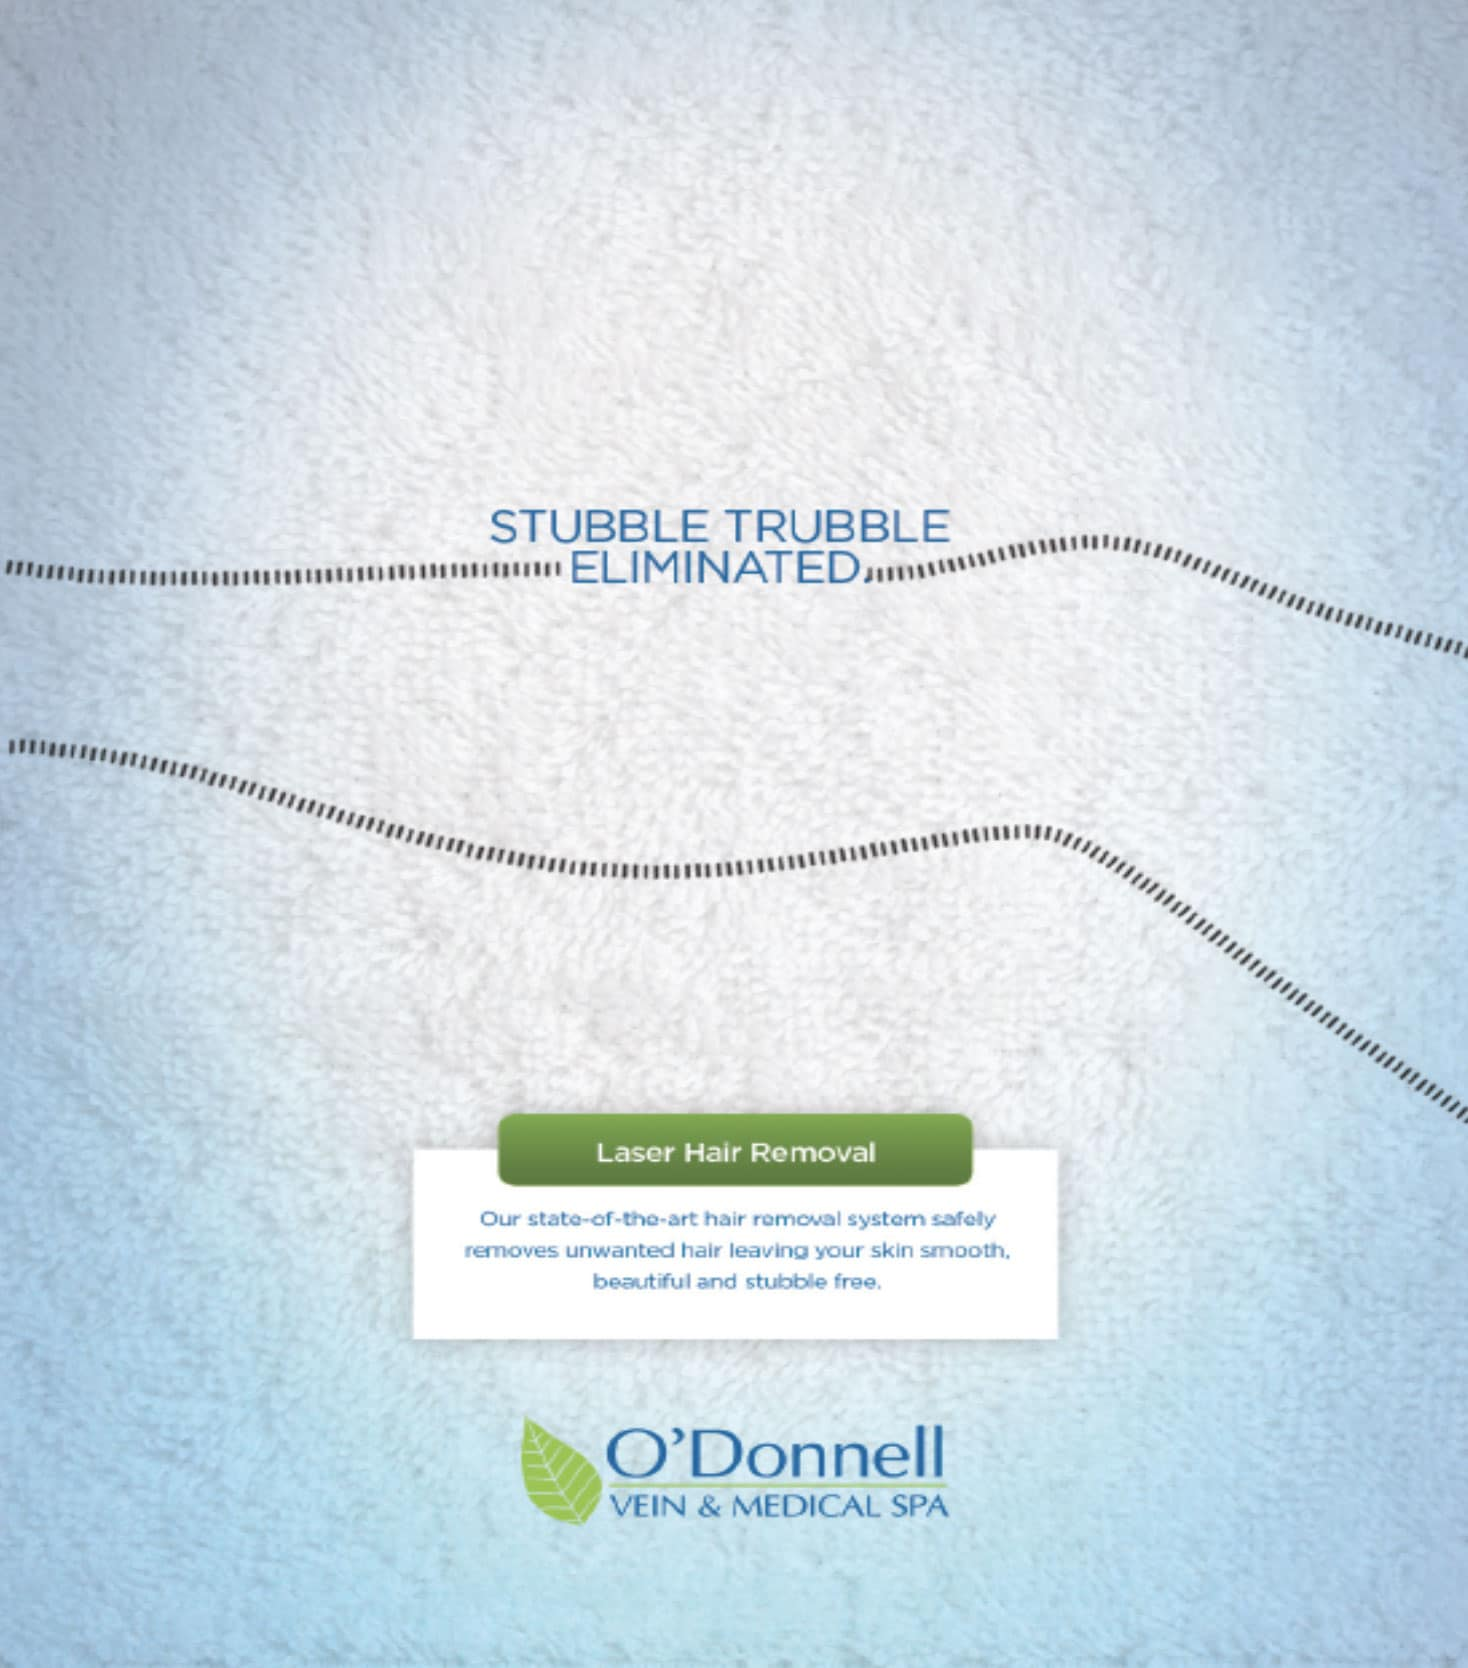 Stubble Trouble Ad - O'Donnell Vein and Medical Spa